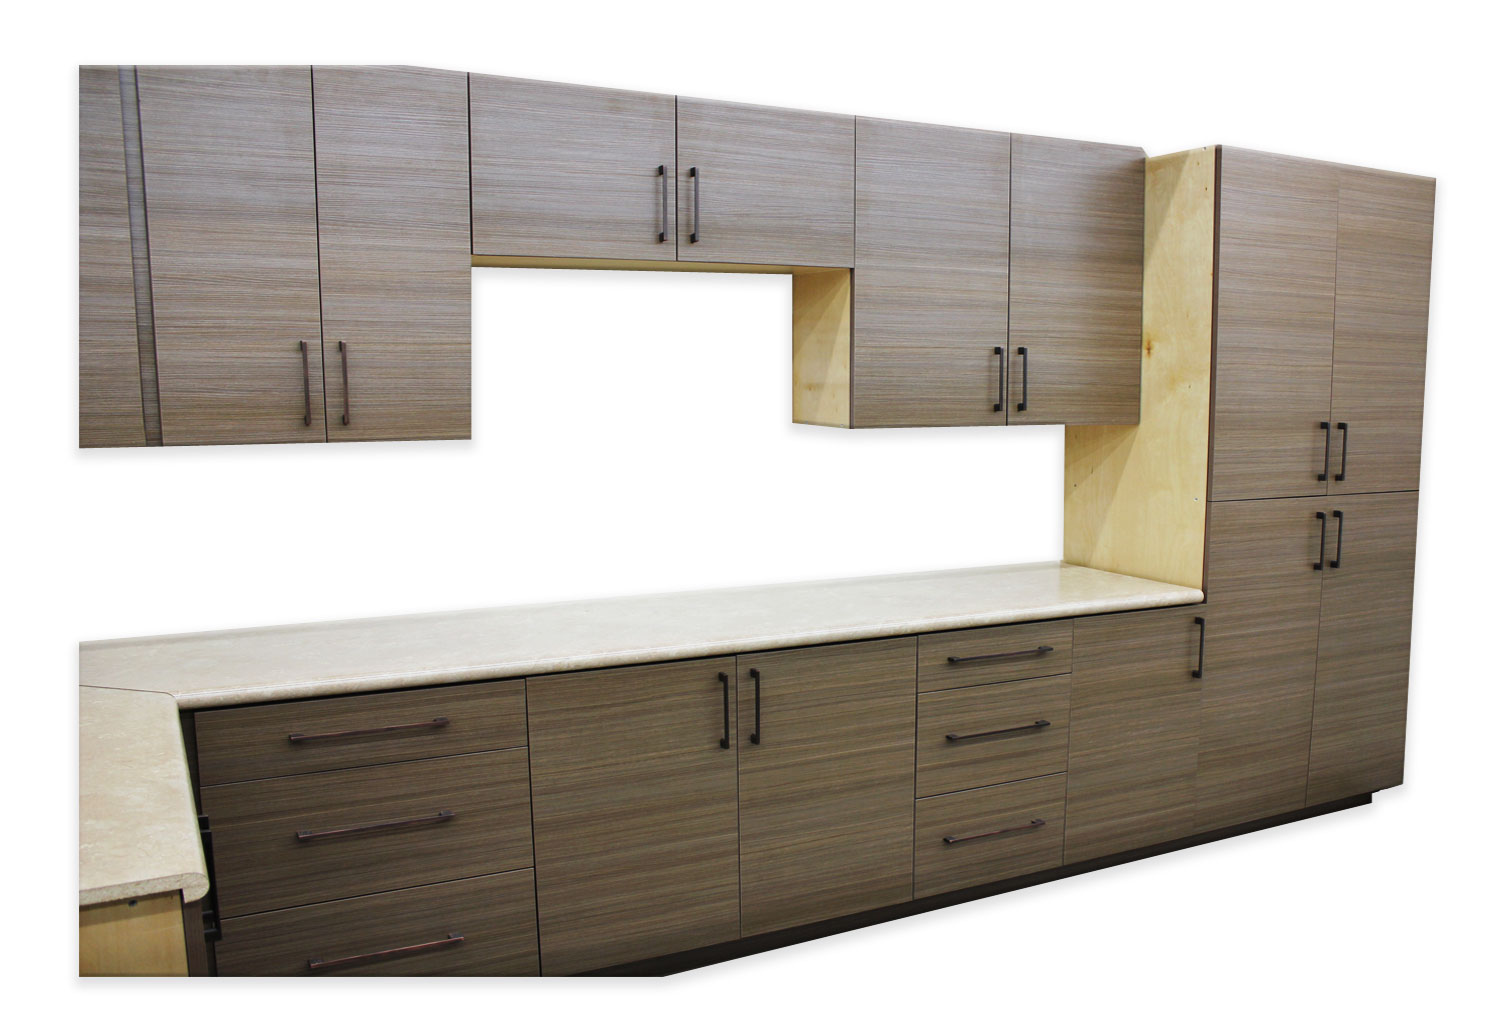 tenino_walnut_kitchen_cabinets.jpg